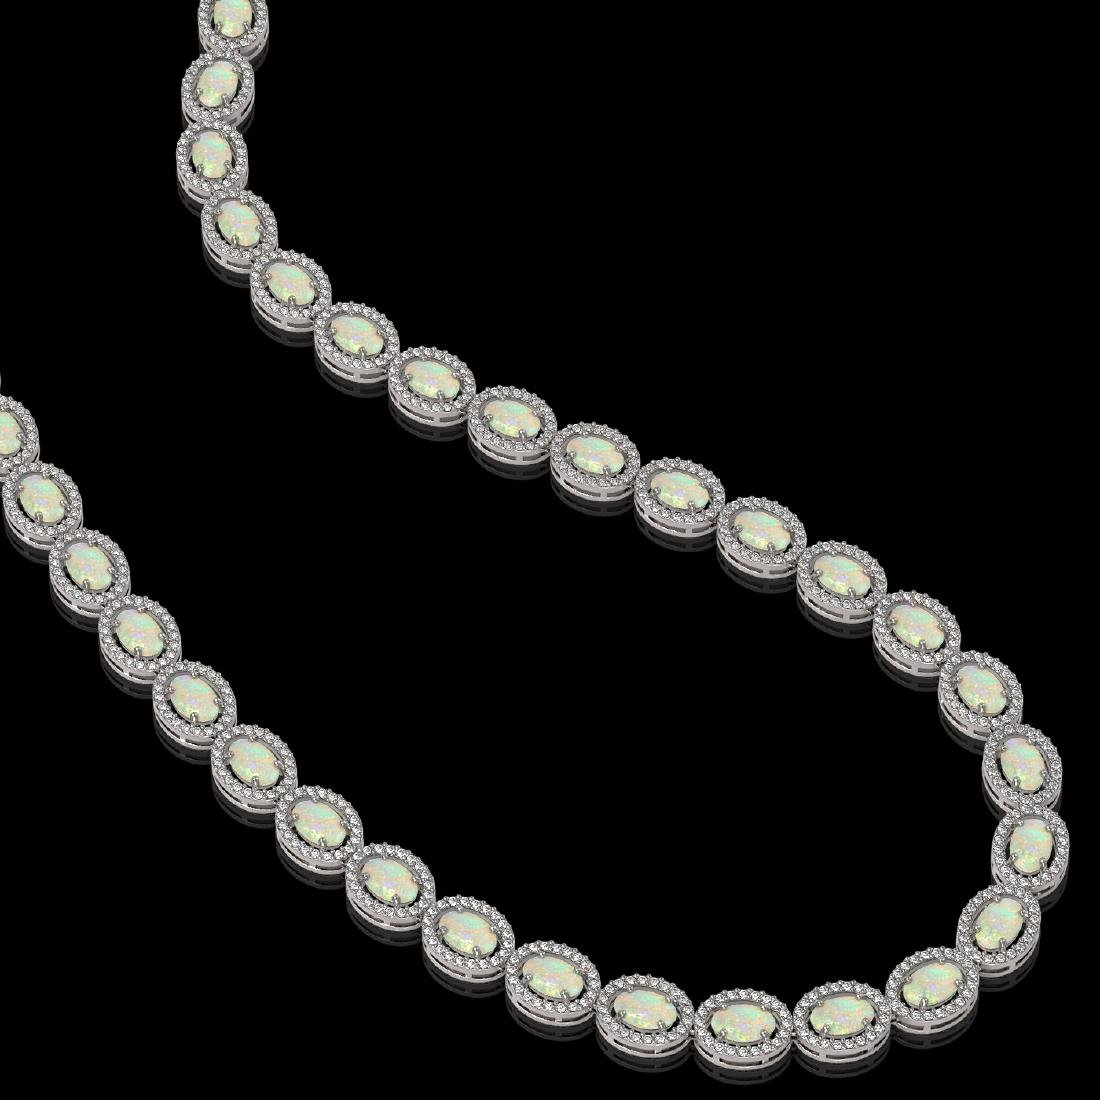 21.21 CTW Opal & Diamond Halo Necklace 10K White Gold - 2